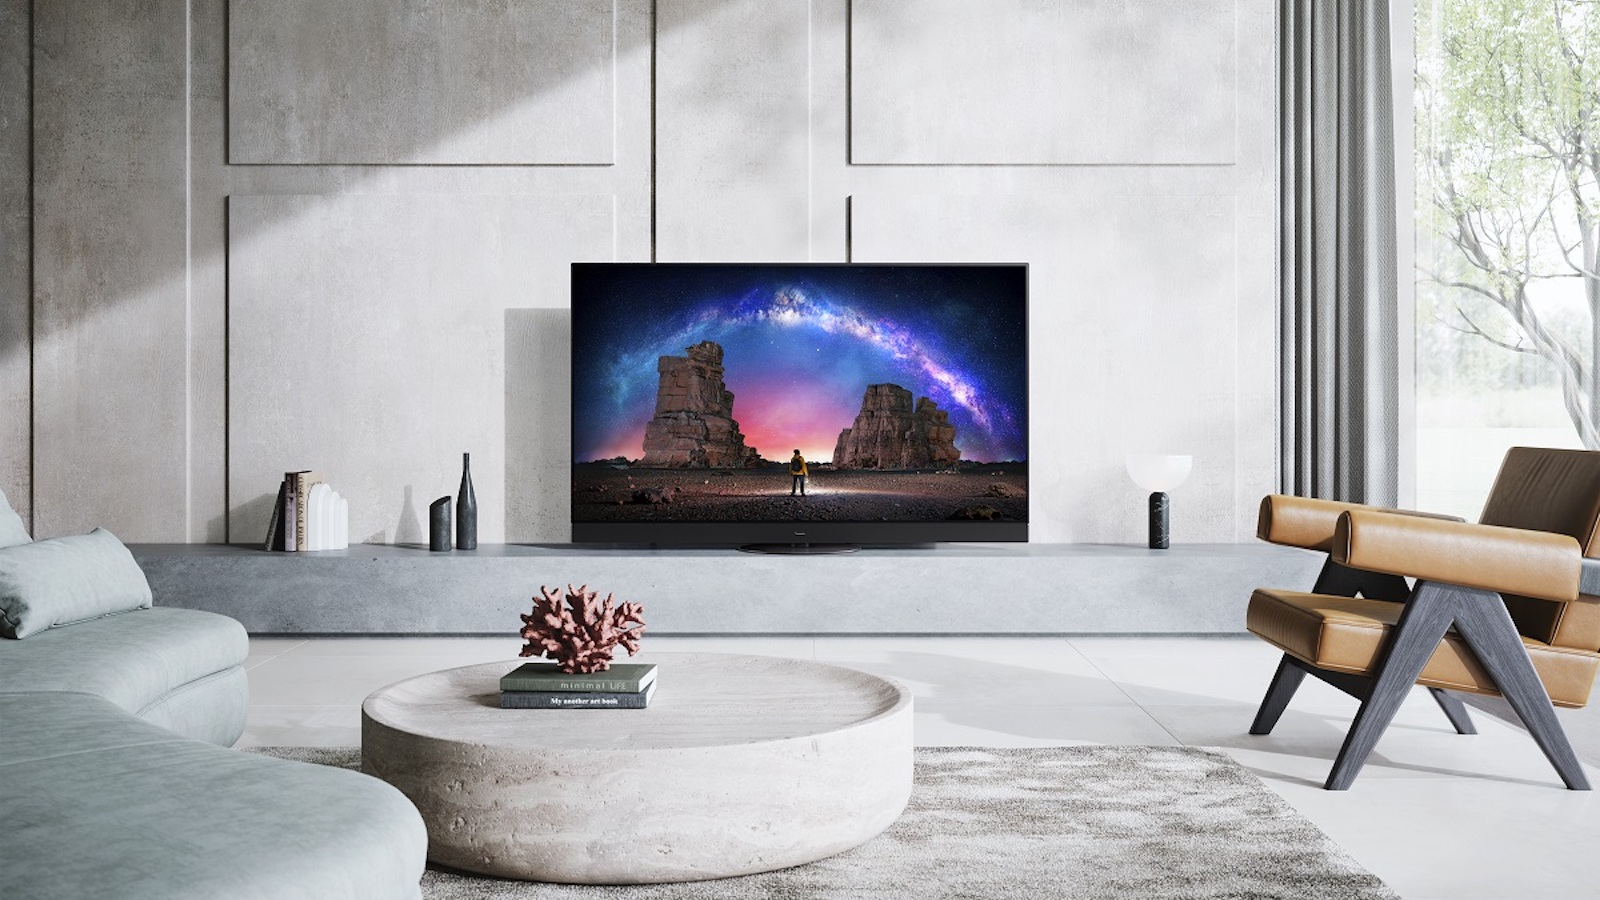 Panasonic JZ2000 OLED TV reduces latency when gaming